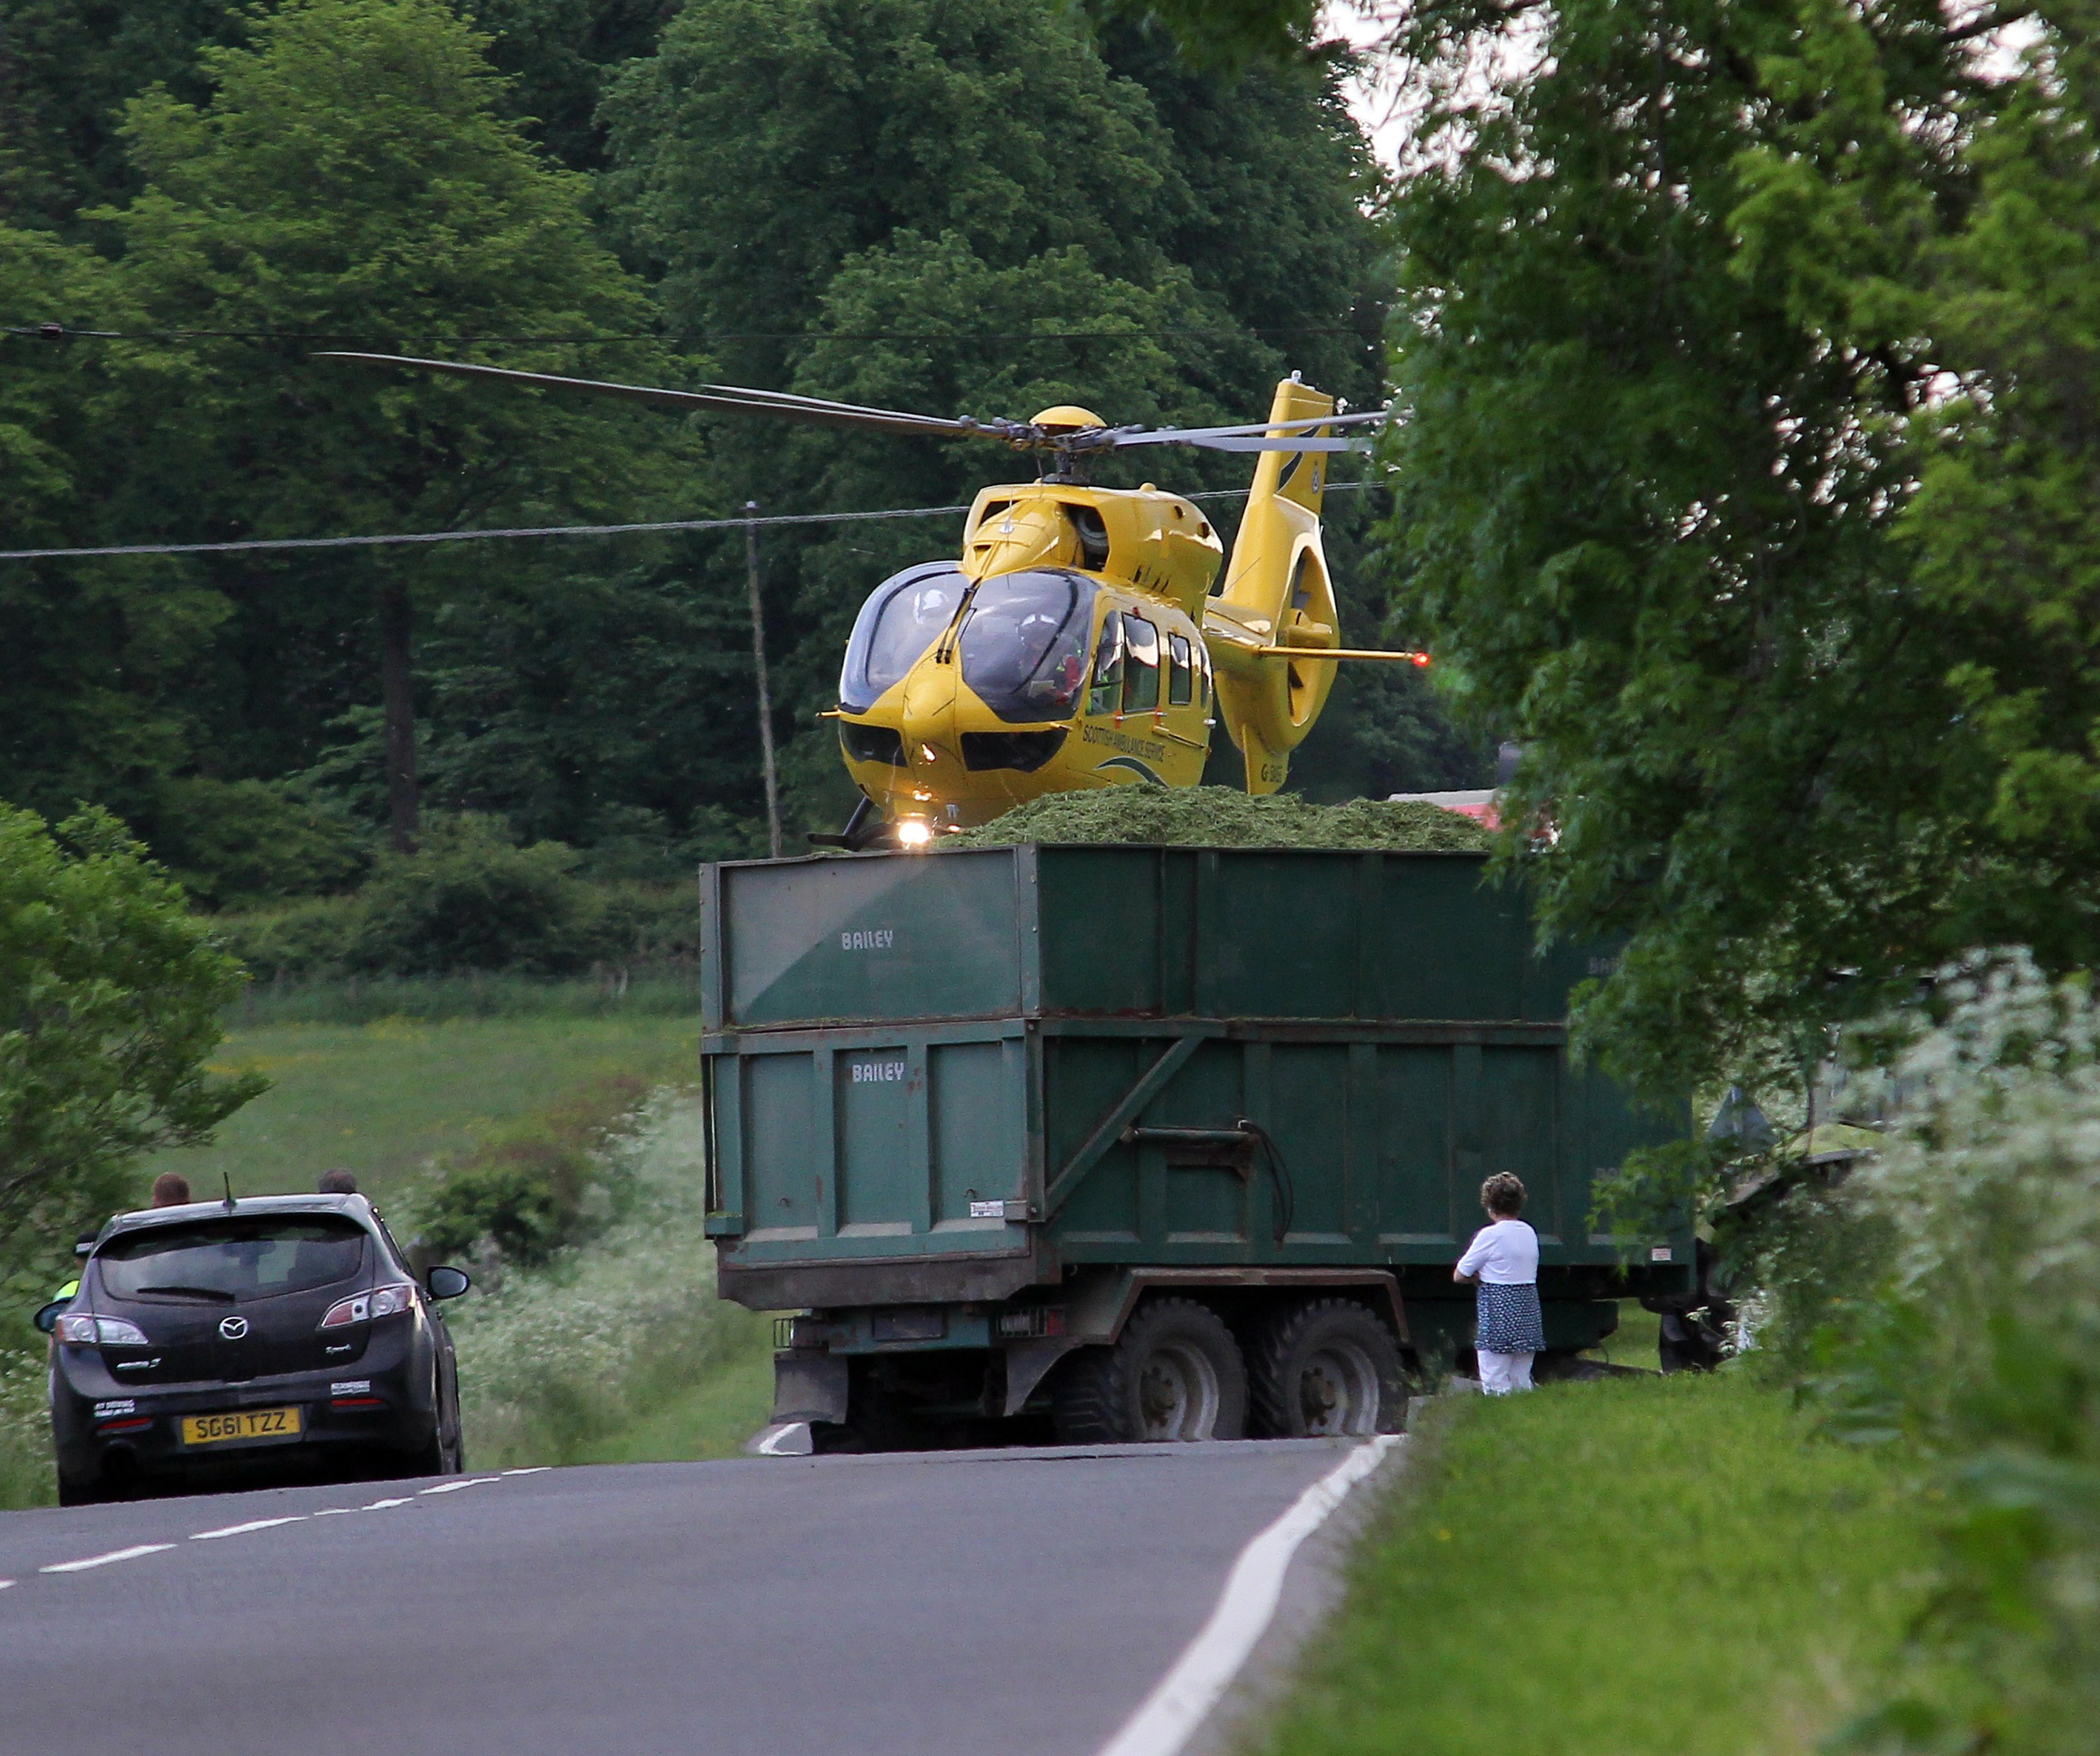 The air ambulance arrives at the scene of the crash